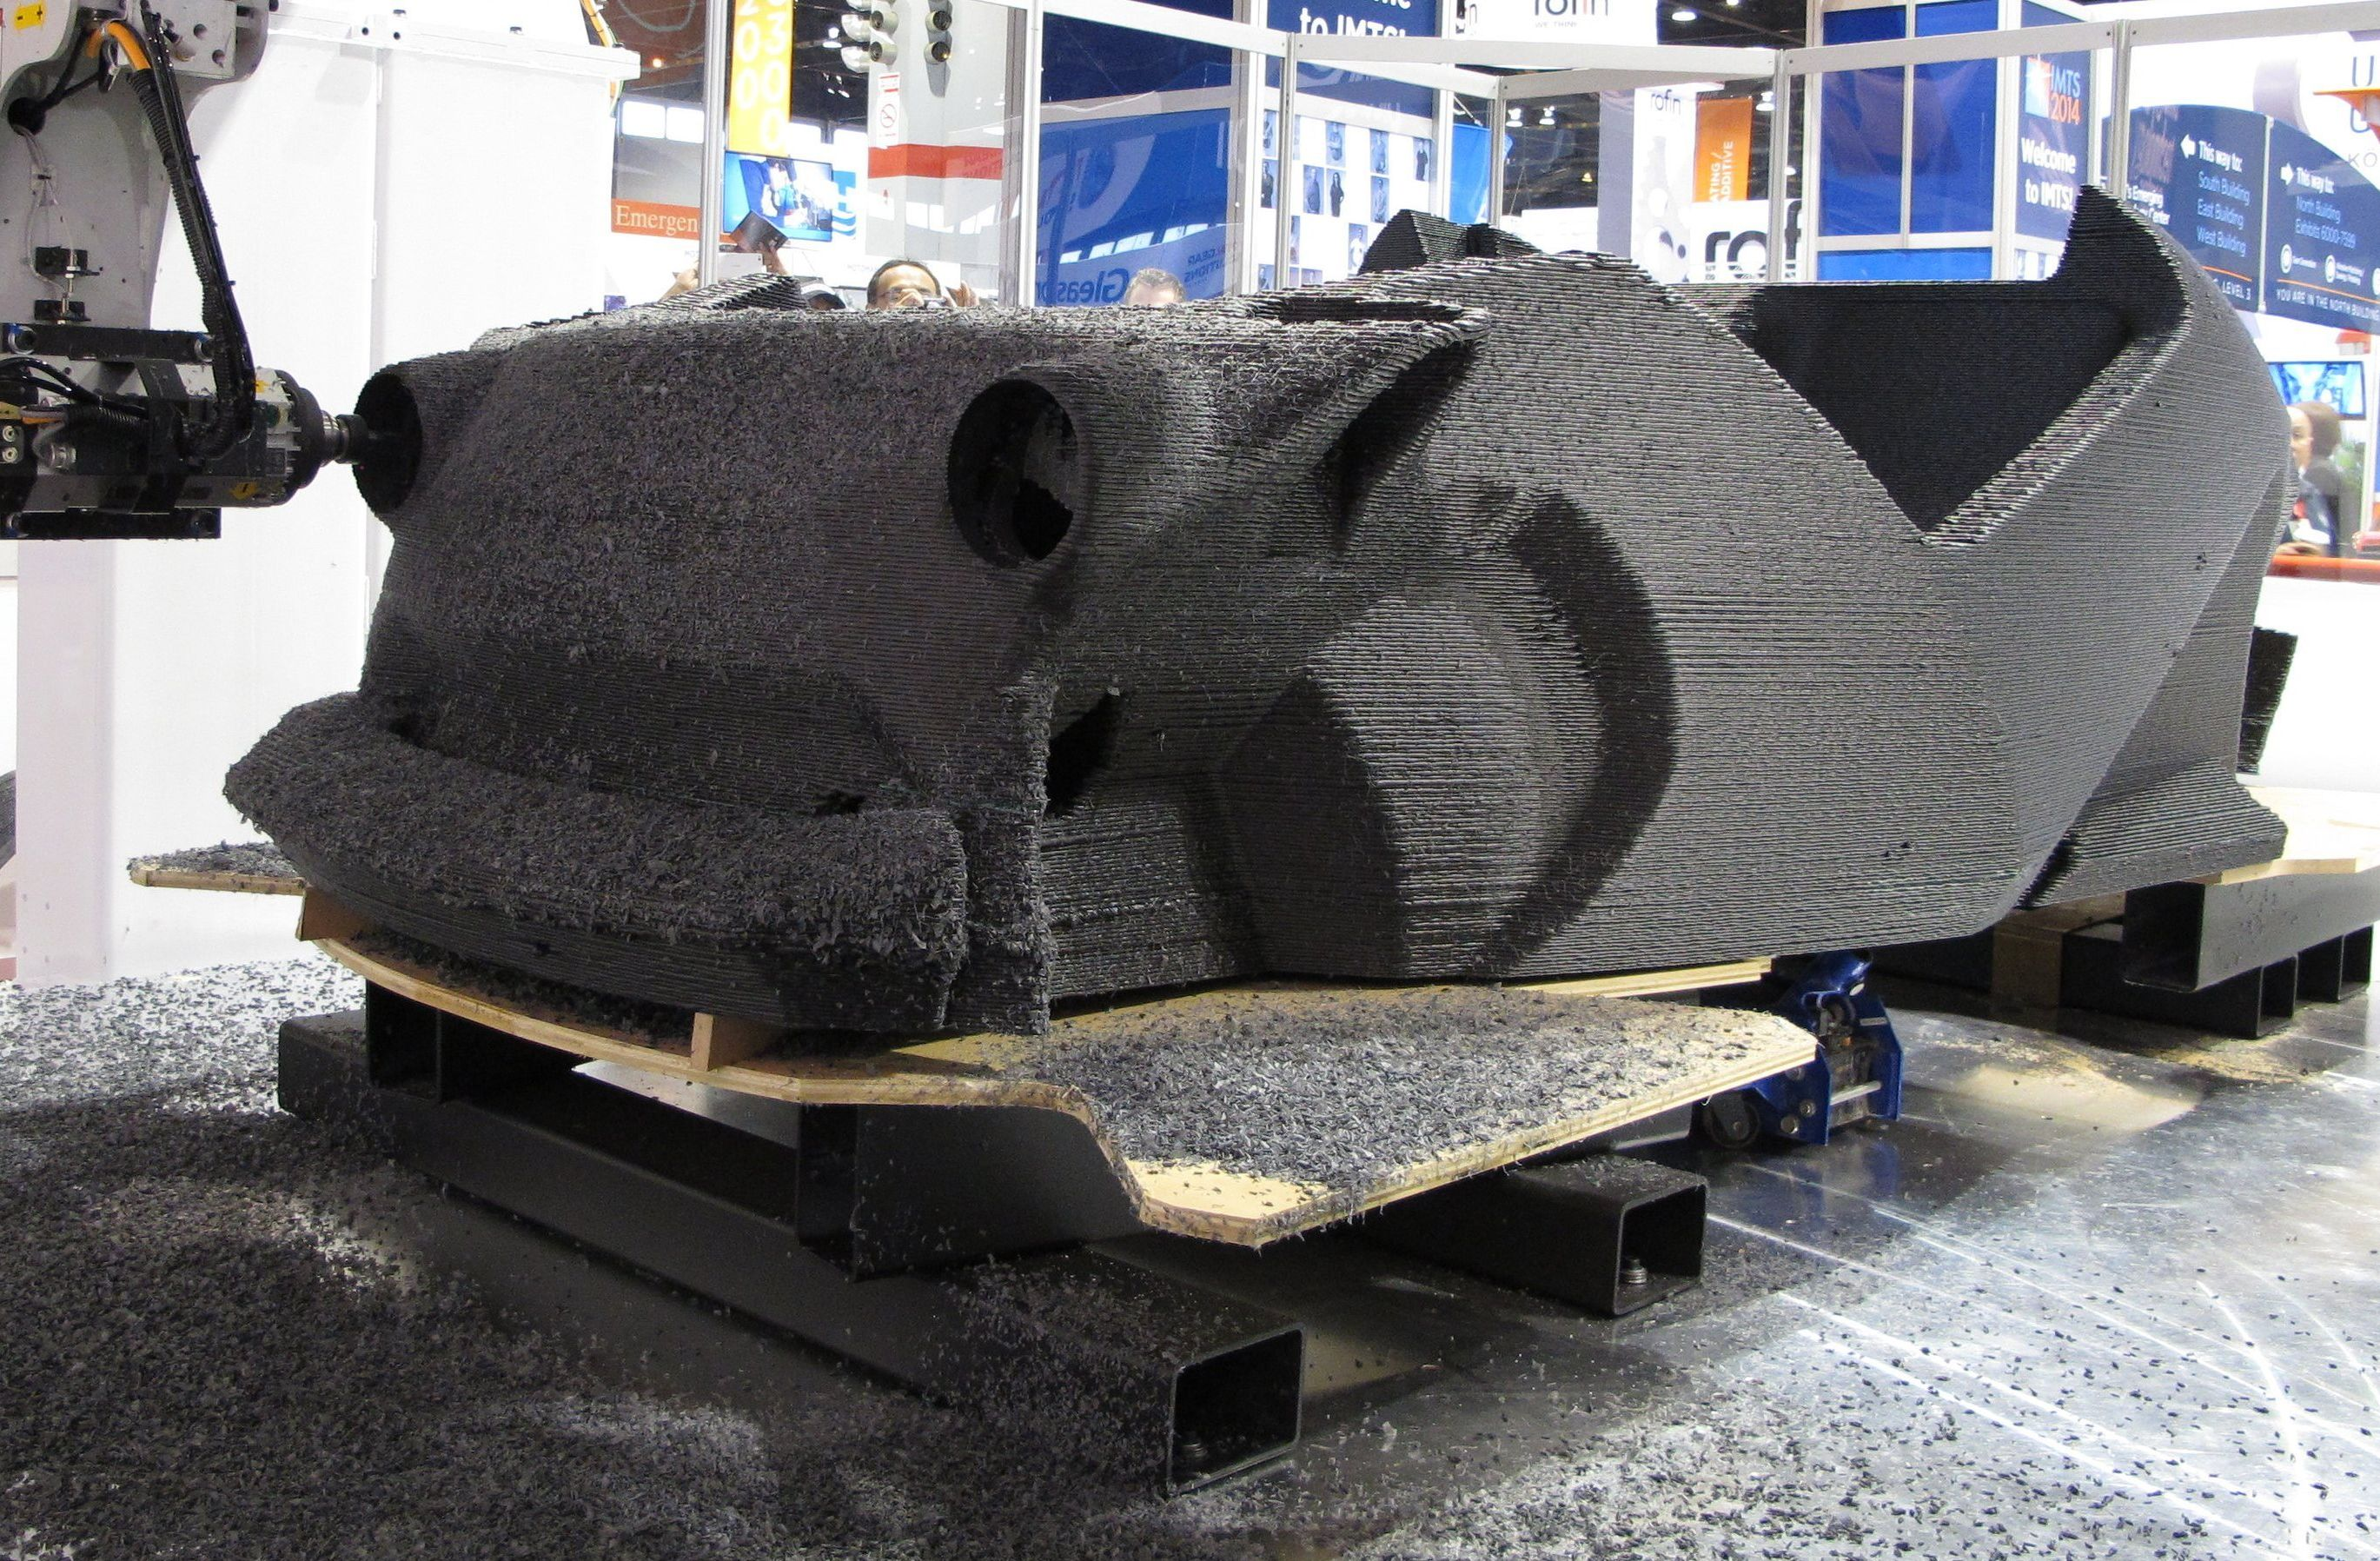 3D-Printed Cars Are Coming